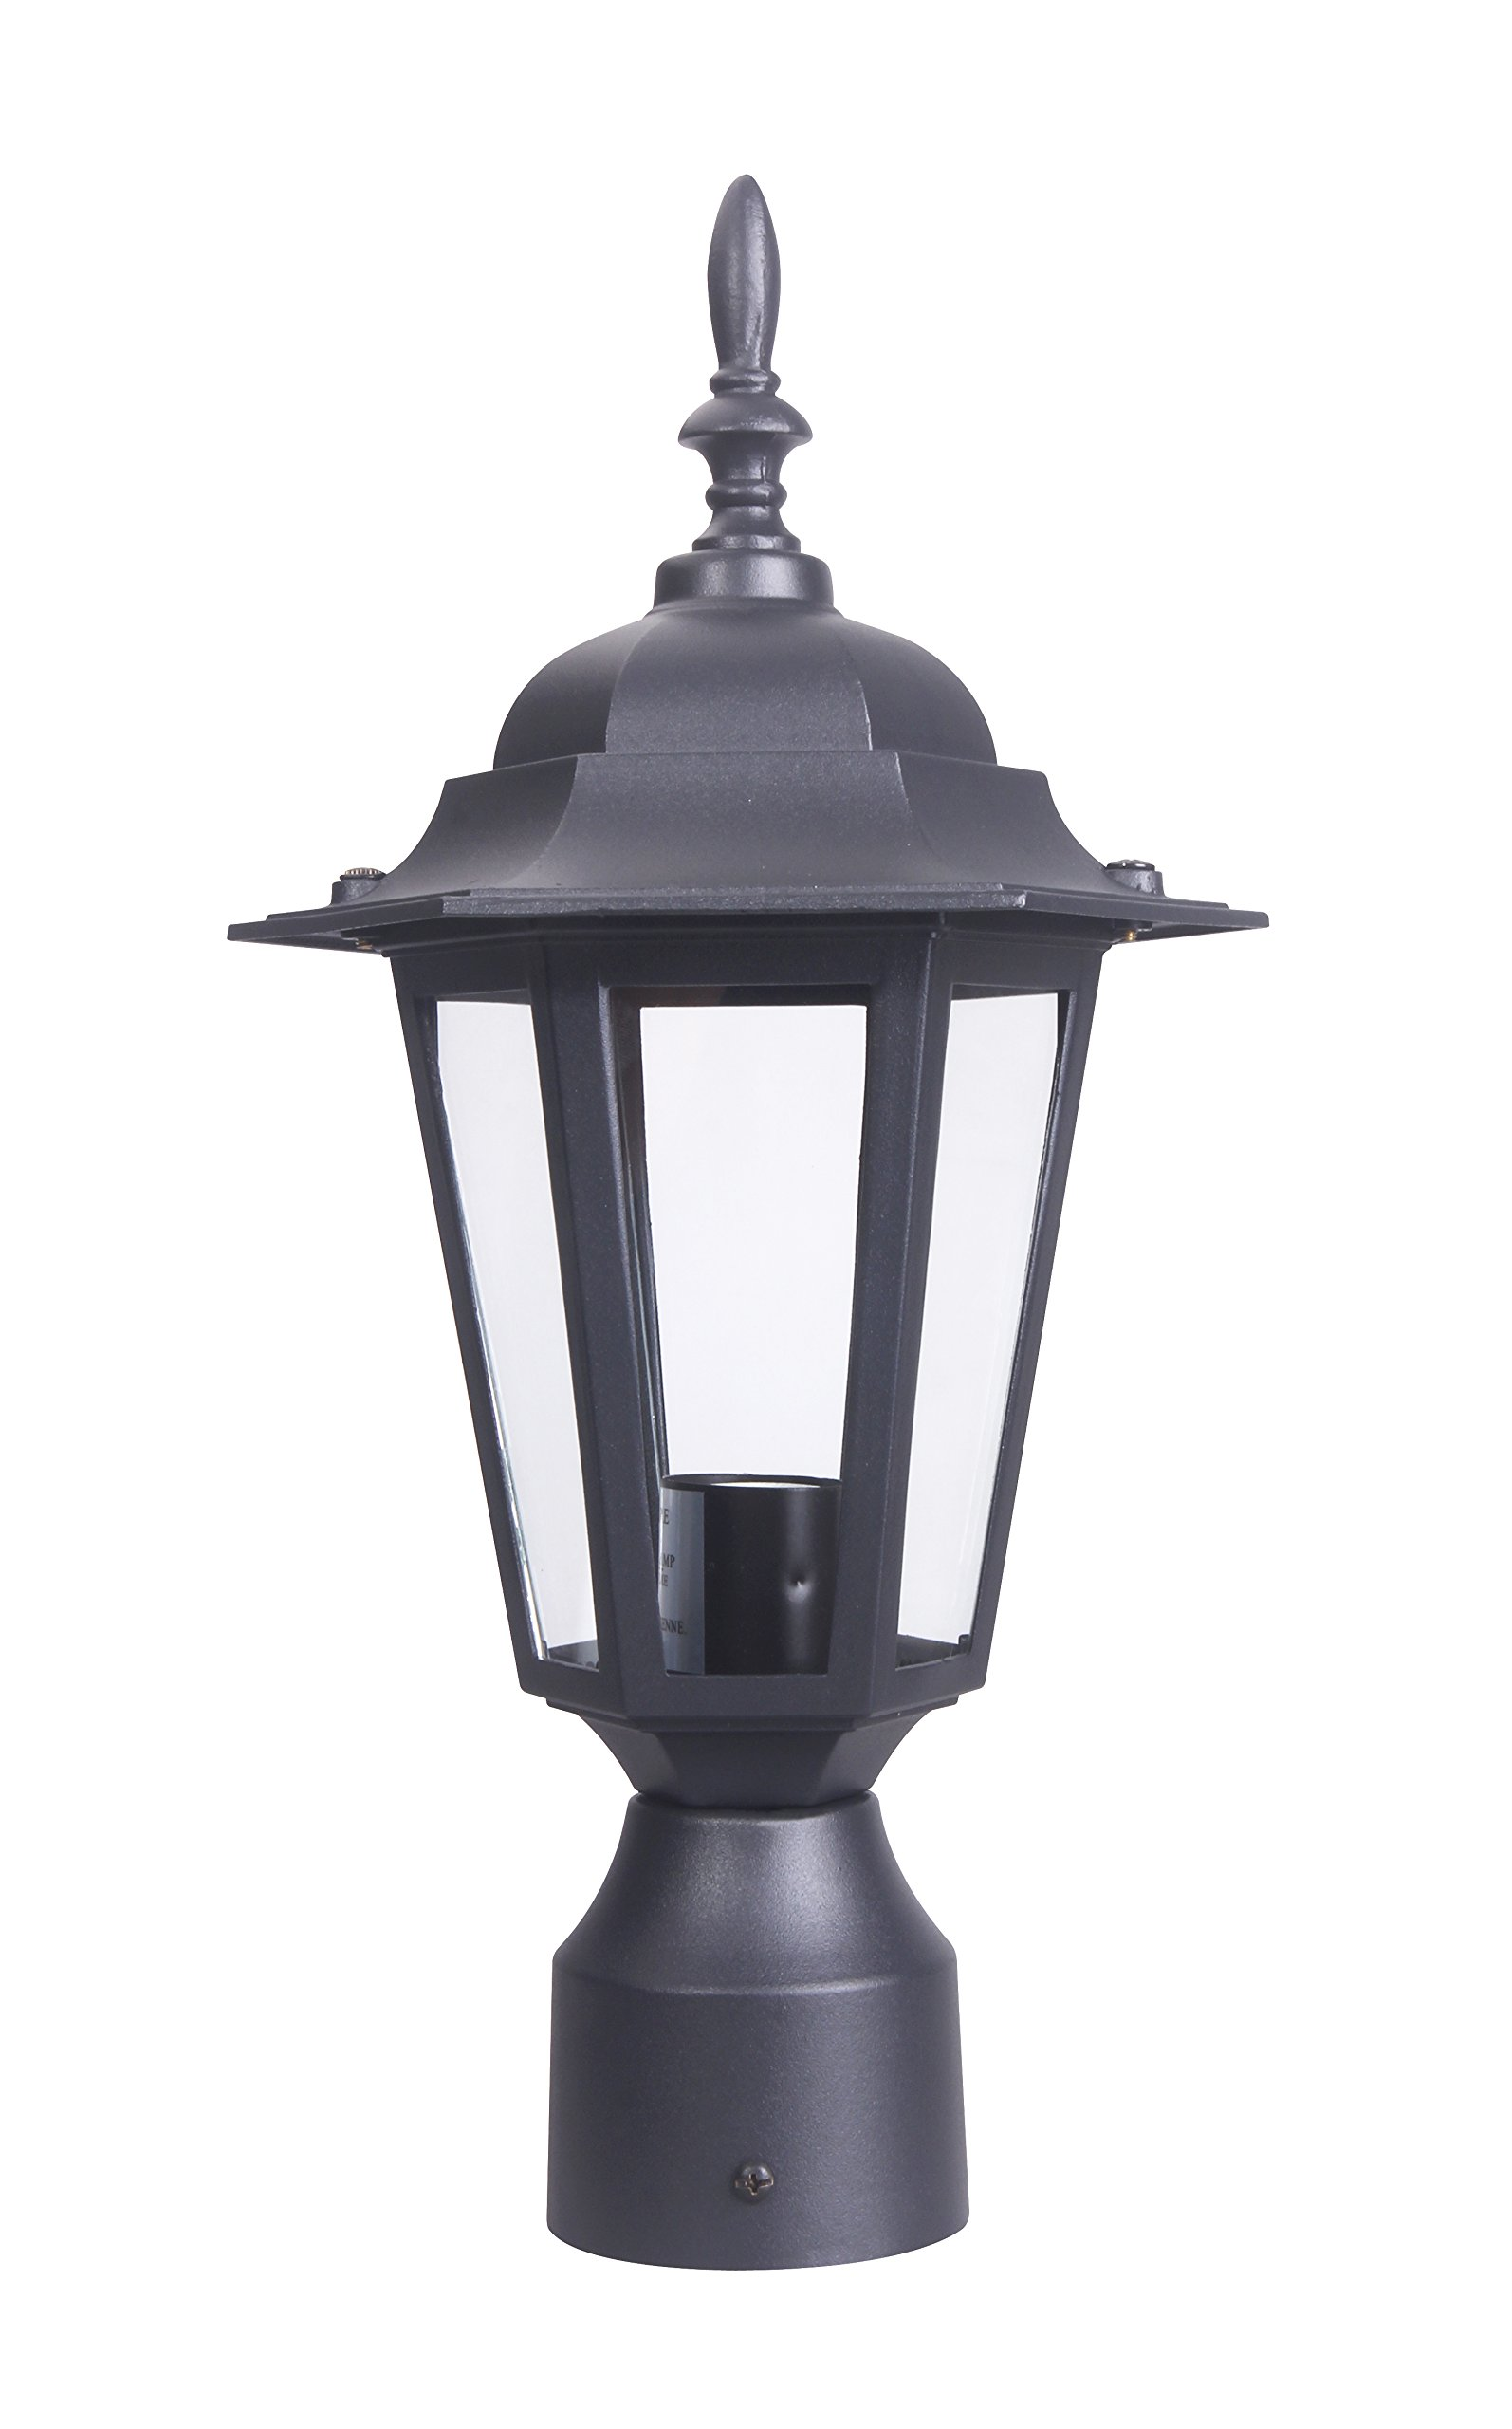 LIT-PaTH Outdoor Post Light Pole Lantern Lighting Fixture with One E26 Base Max 60W, Aluminum Housing Plus Glass, Matte Black Finish